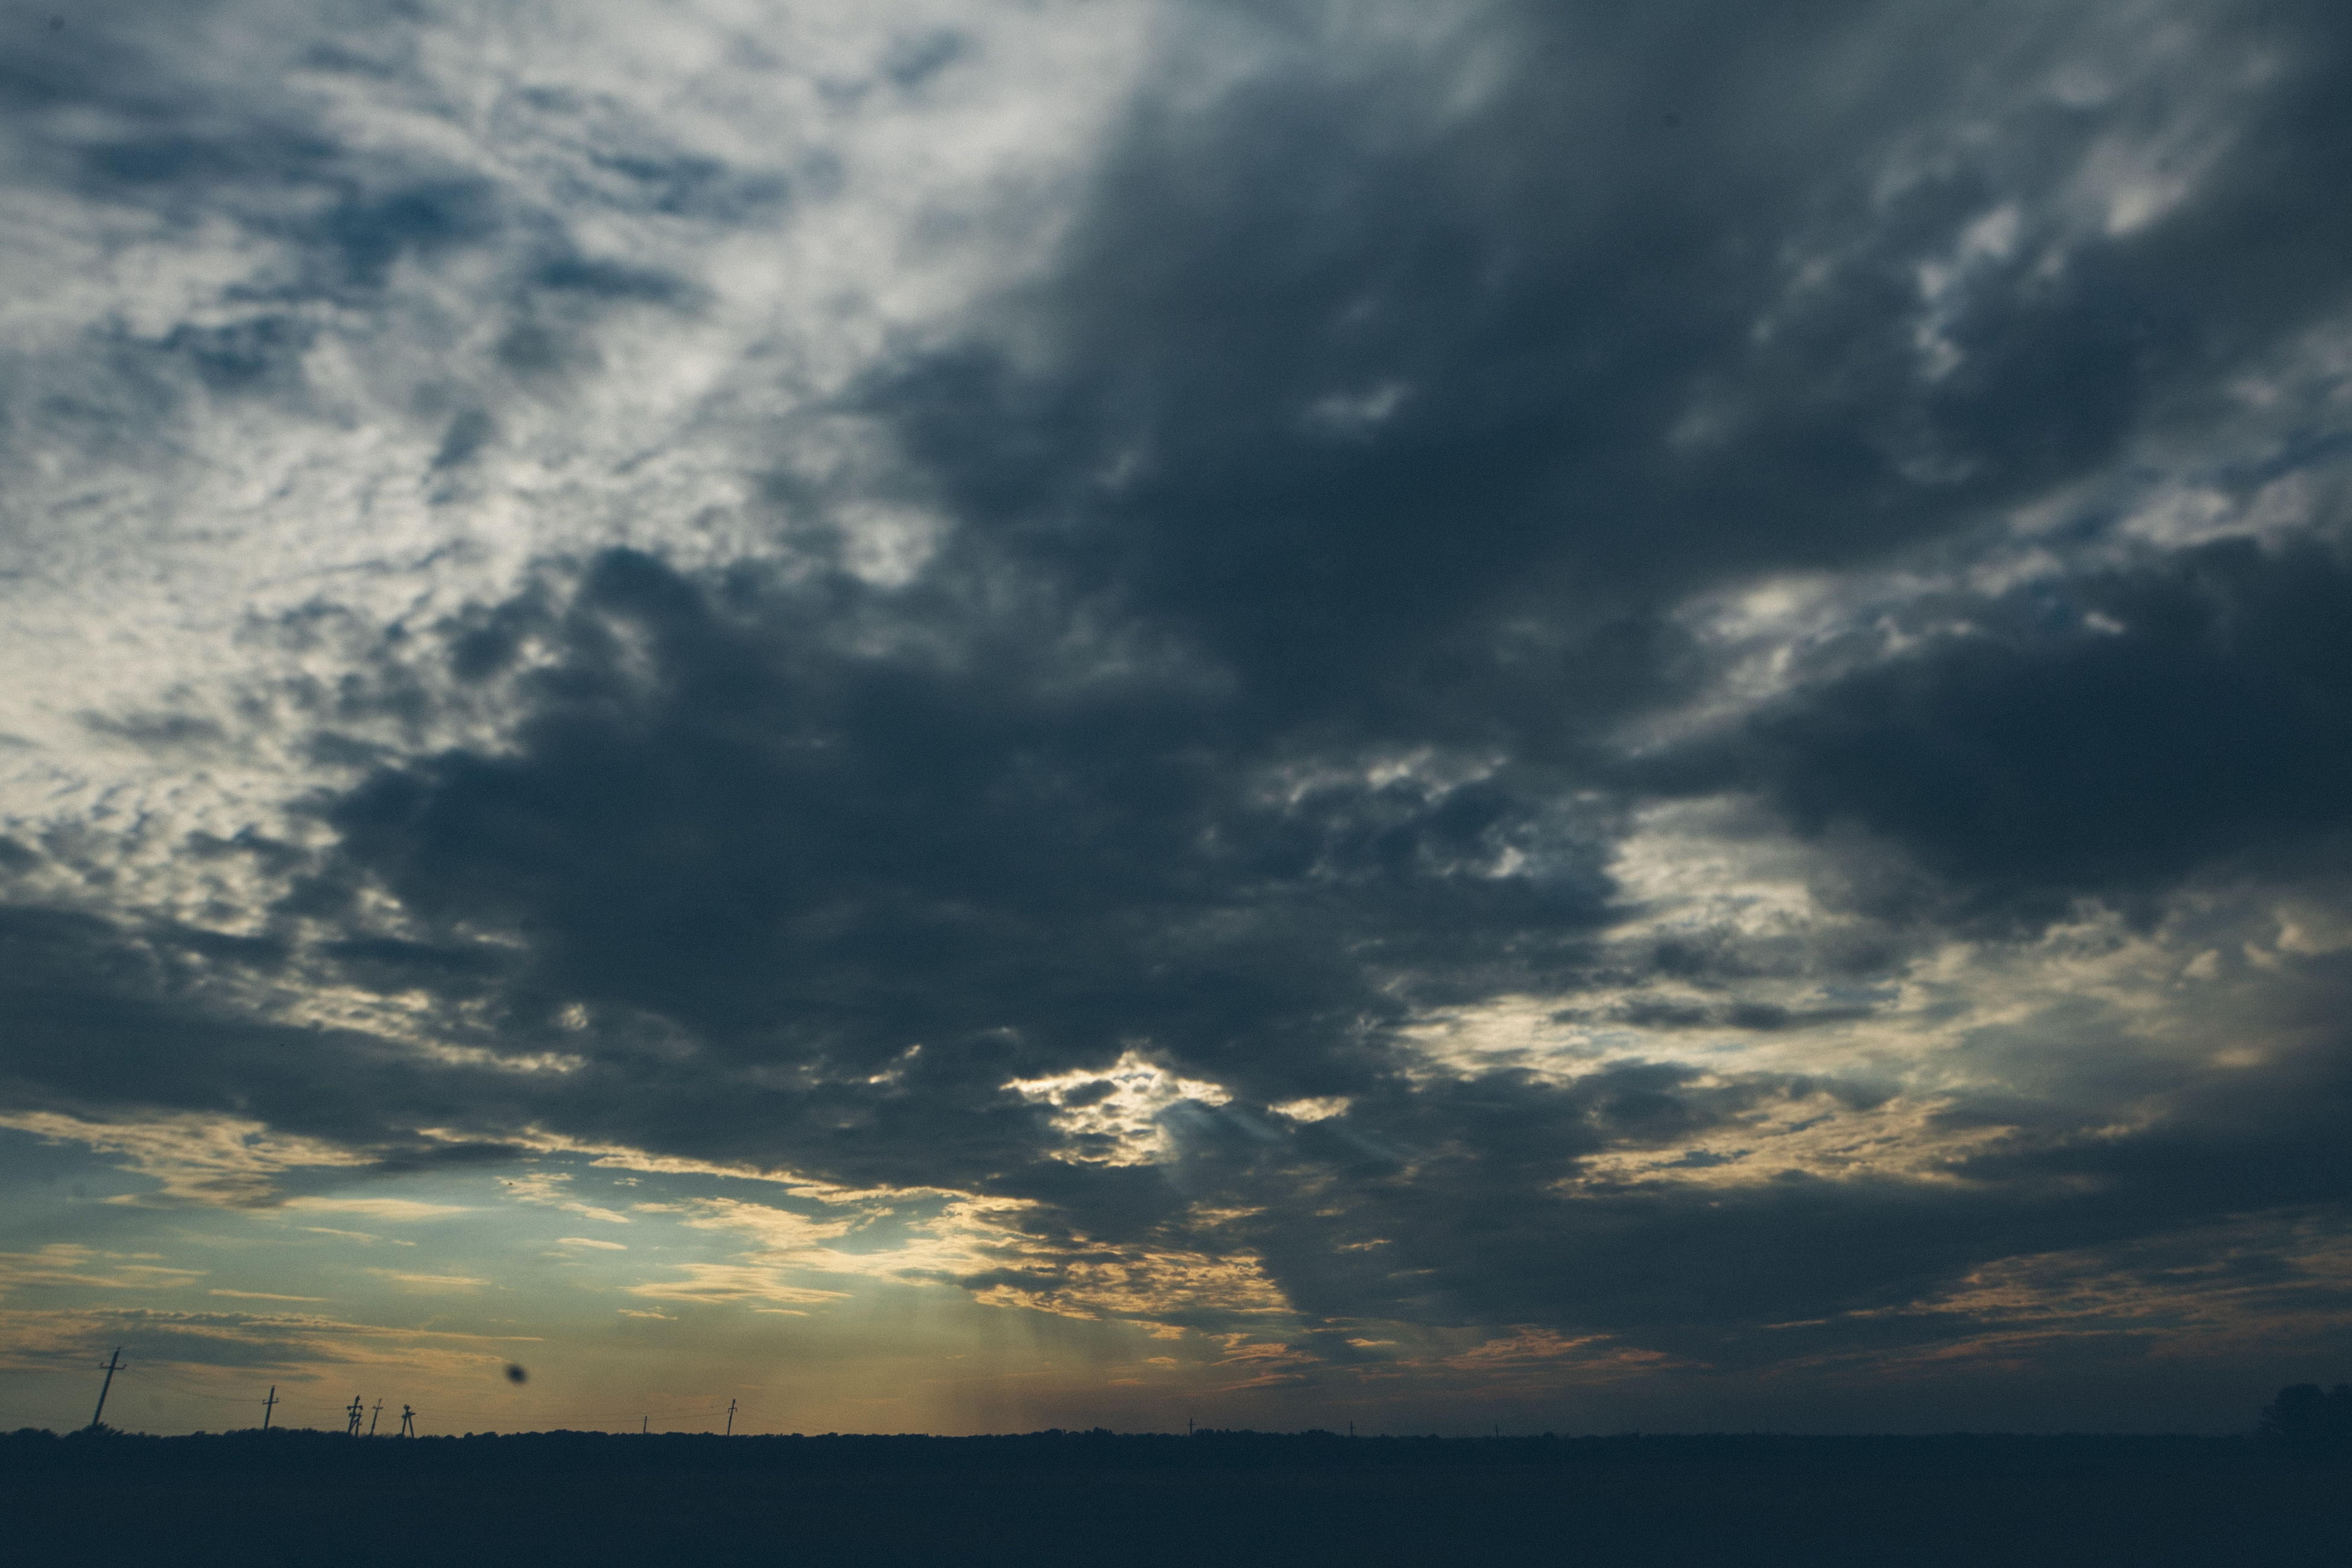 sky, tranquil scene, scenics, cloud - sky, tranquility, beauty in nature, cloudy, sunset, nature, silhouette, cloud, idyllic, weather, cloudscape, overcast, sea, low angle view, outdoors, horizon over water, landscape